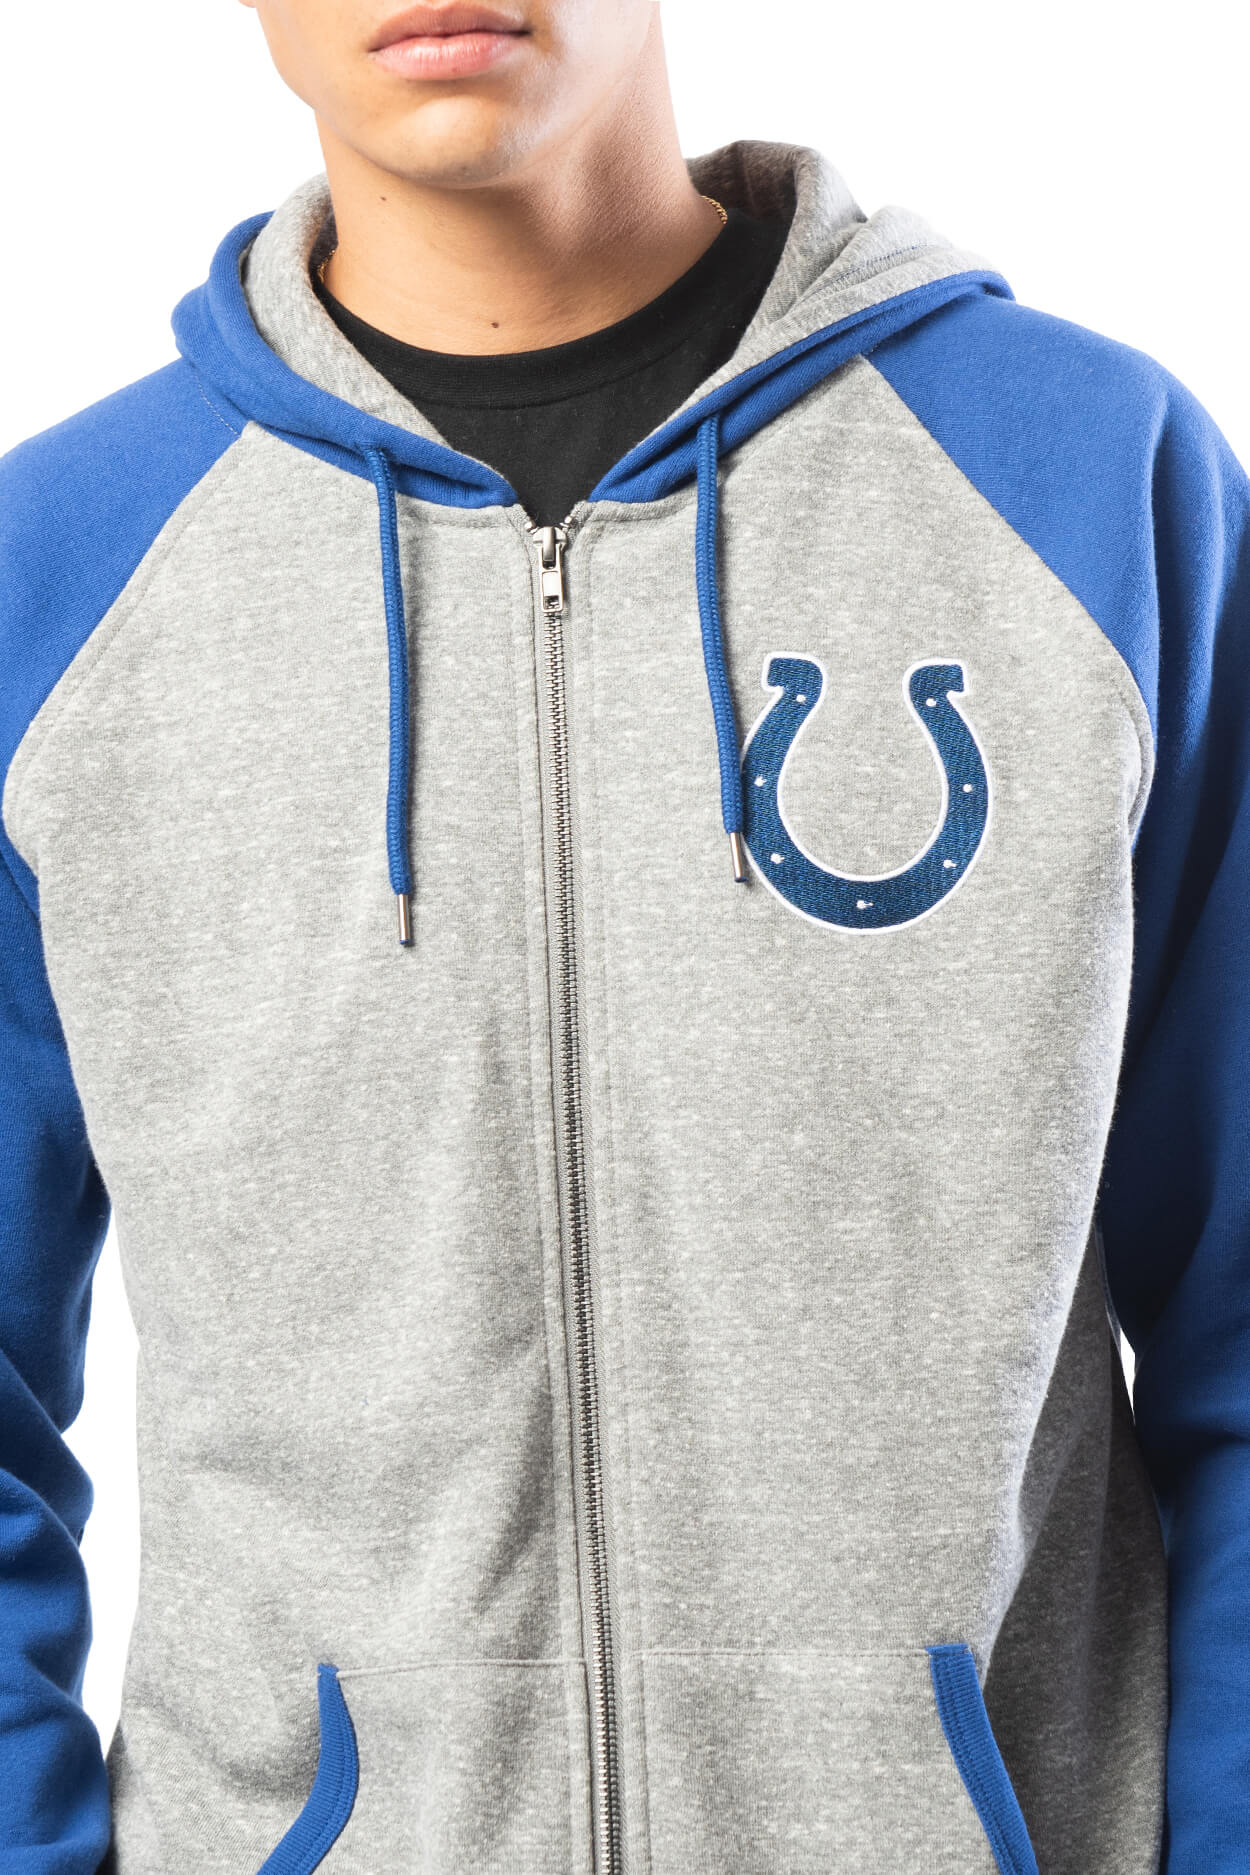 NFL Indianapolis Colts Men's Full Zip Hoodie|Indianapolis Colts